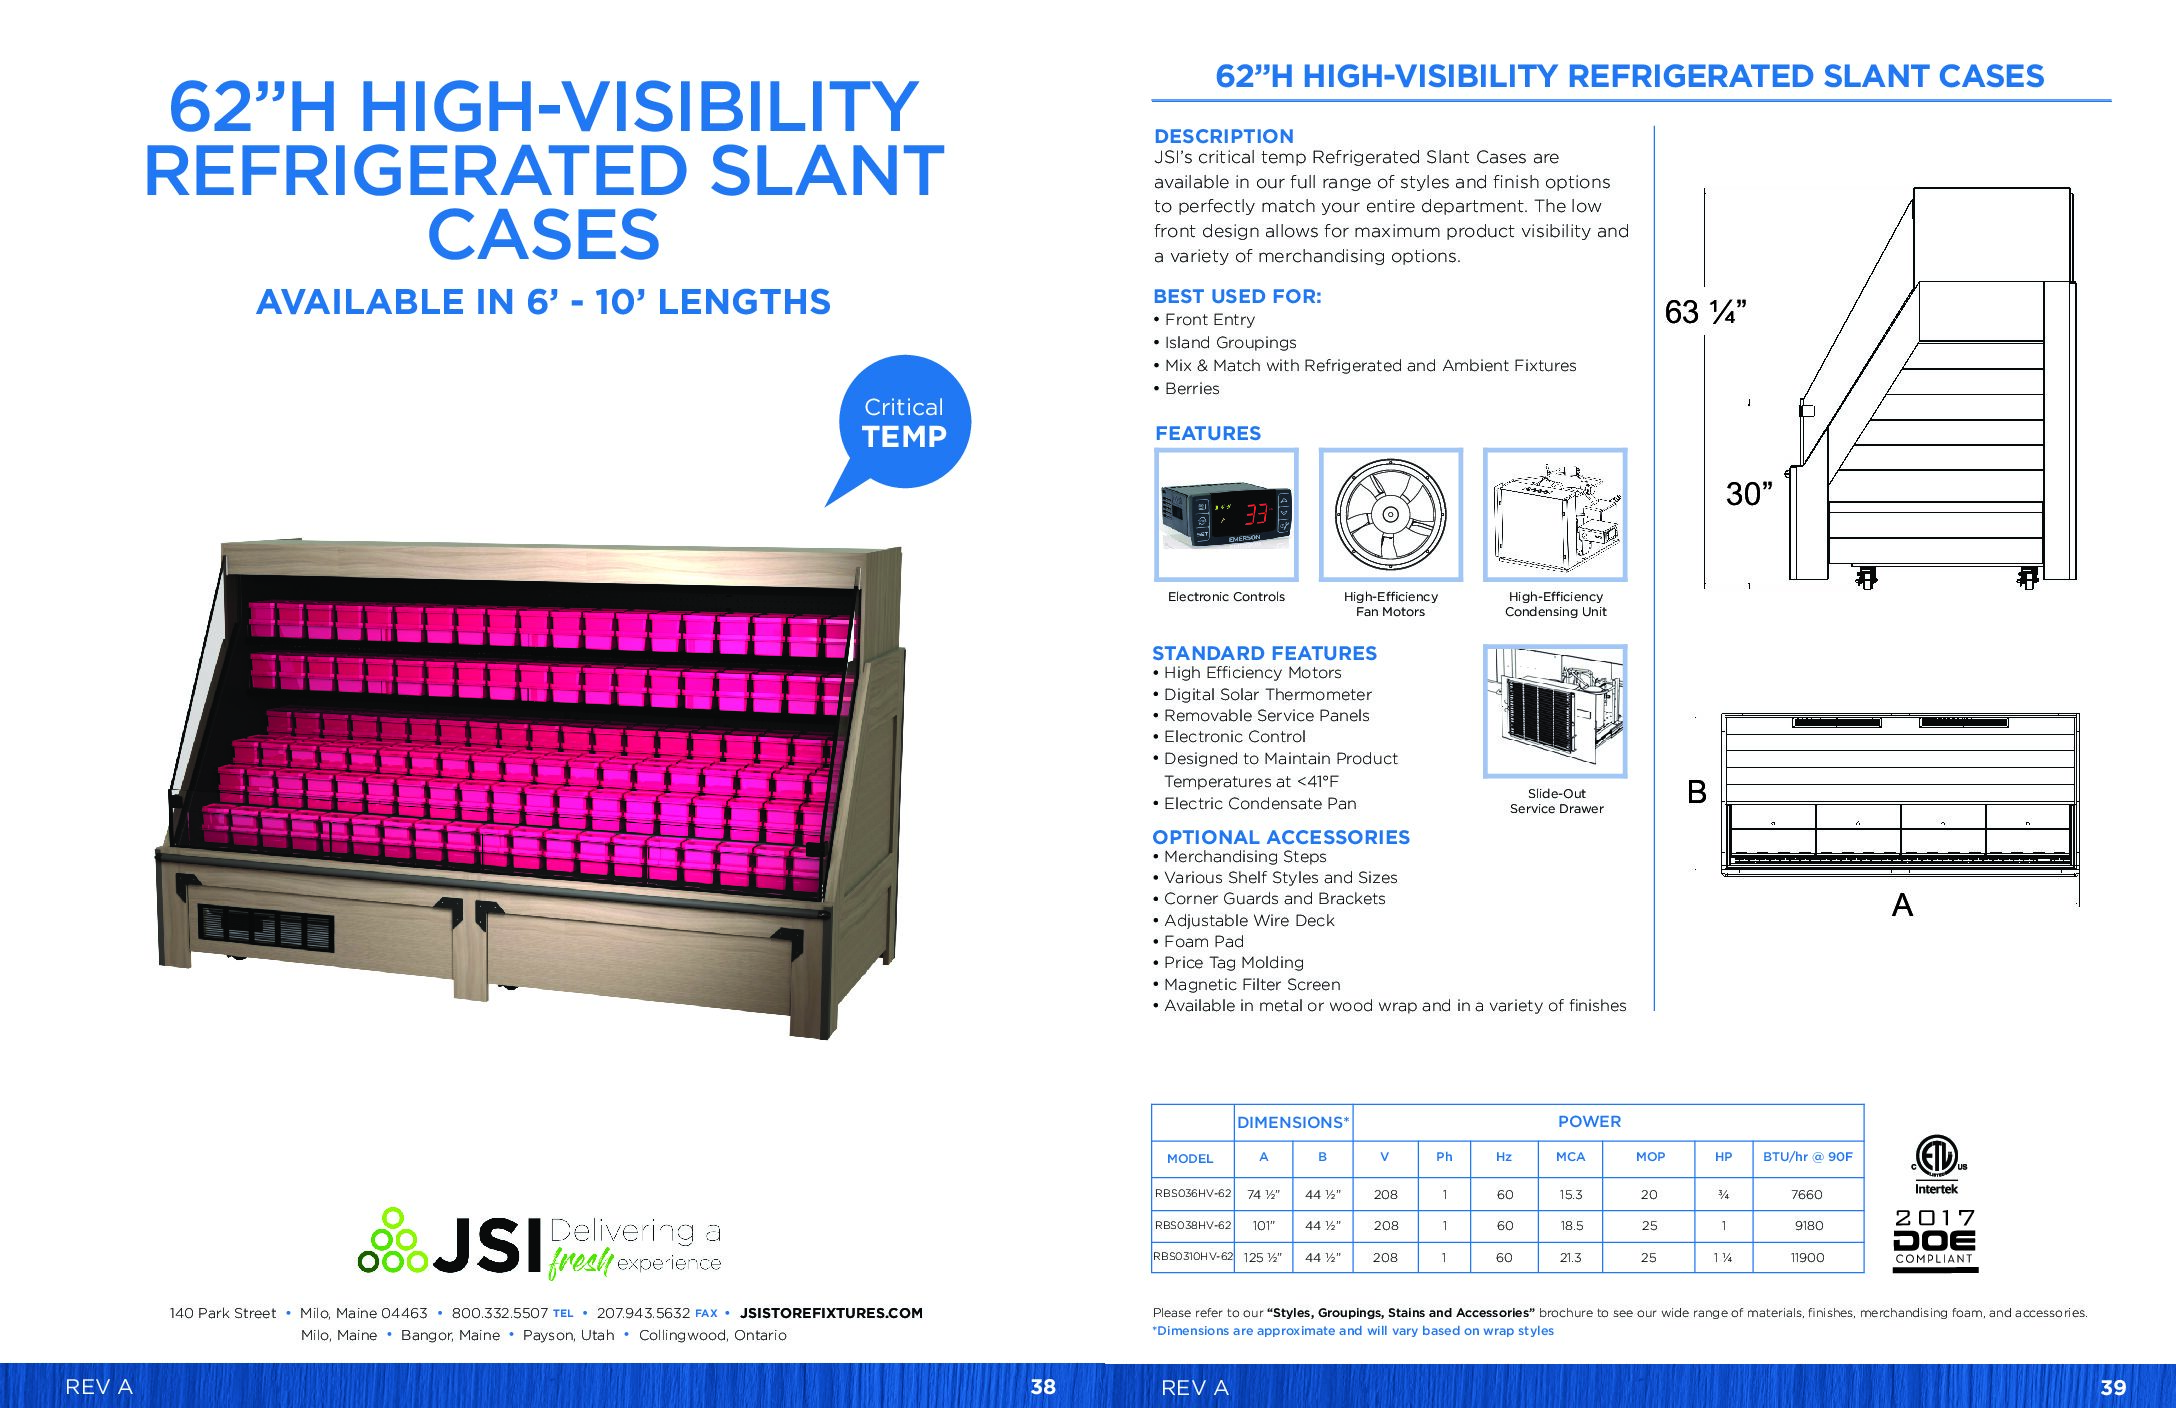 62in High-Visibility Refrigerated Slant Cases 6ft-10ft (PDF)